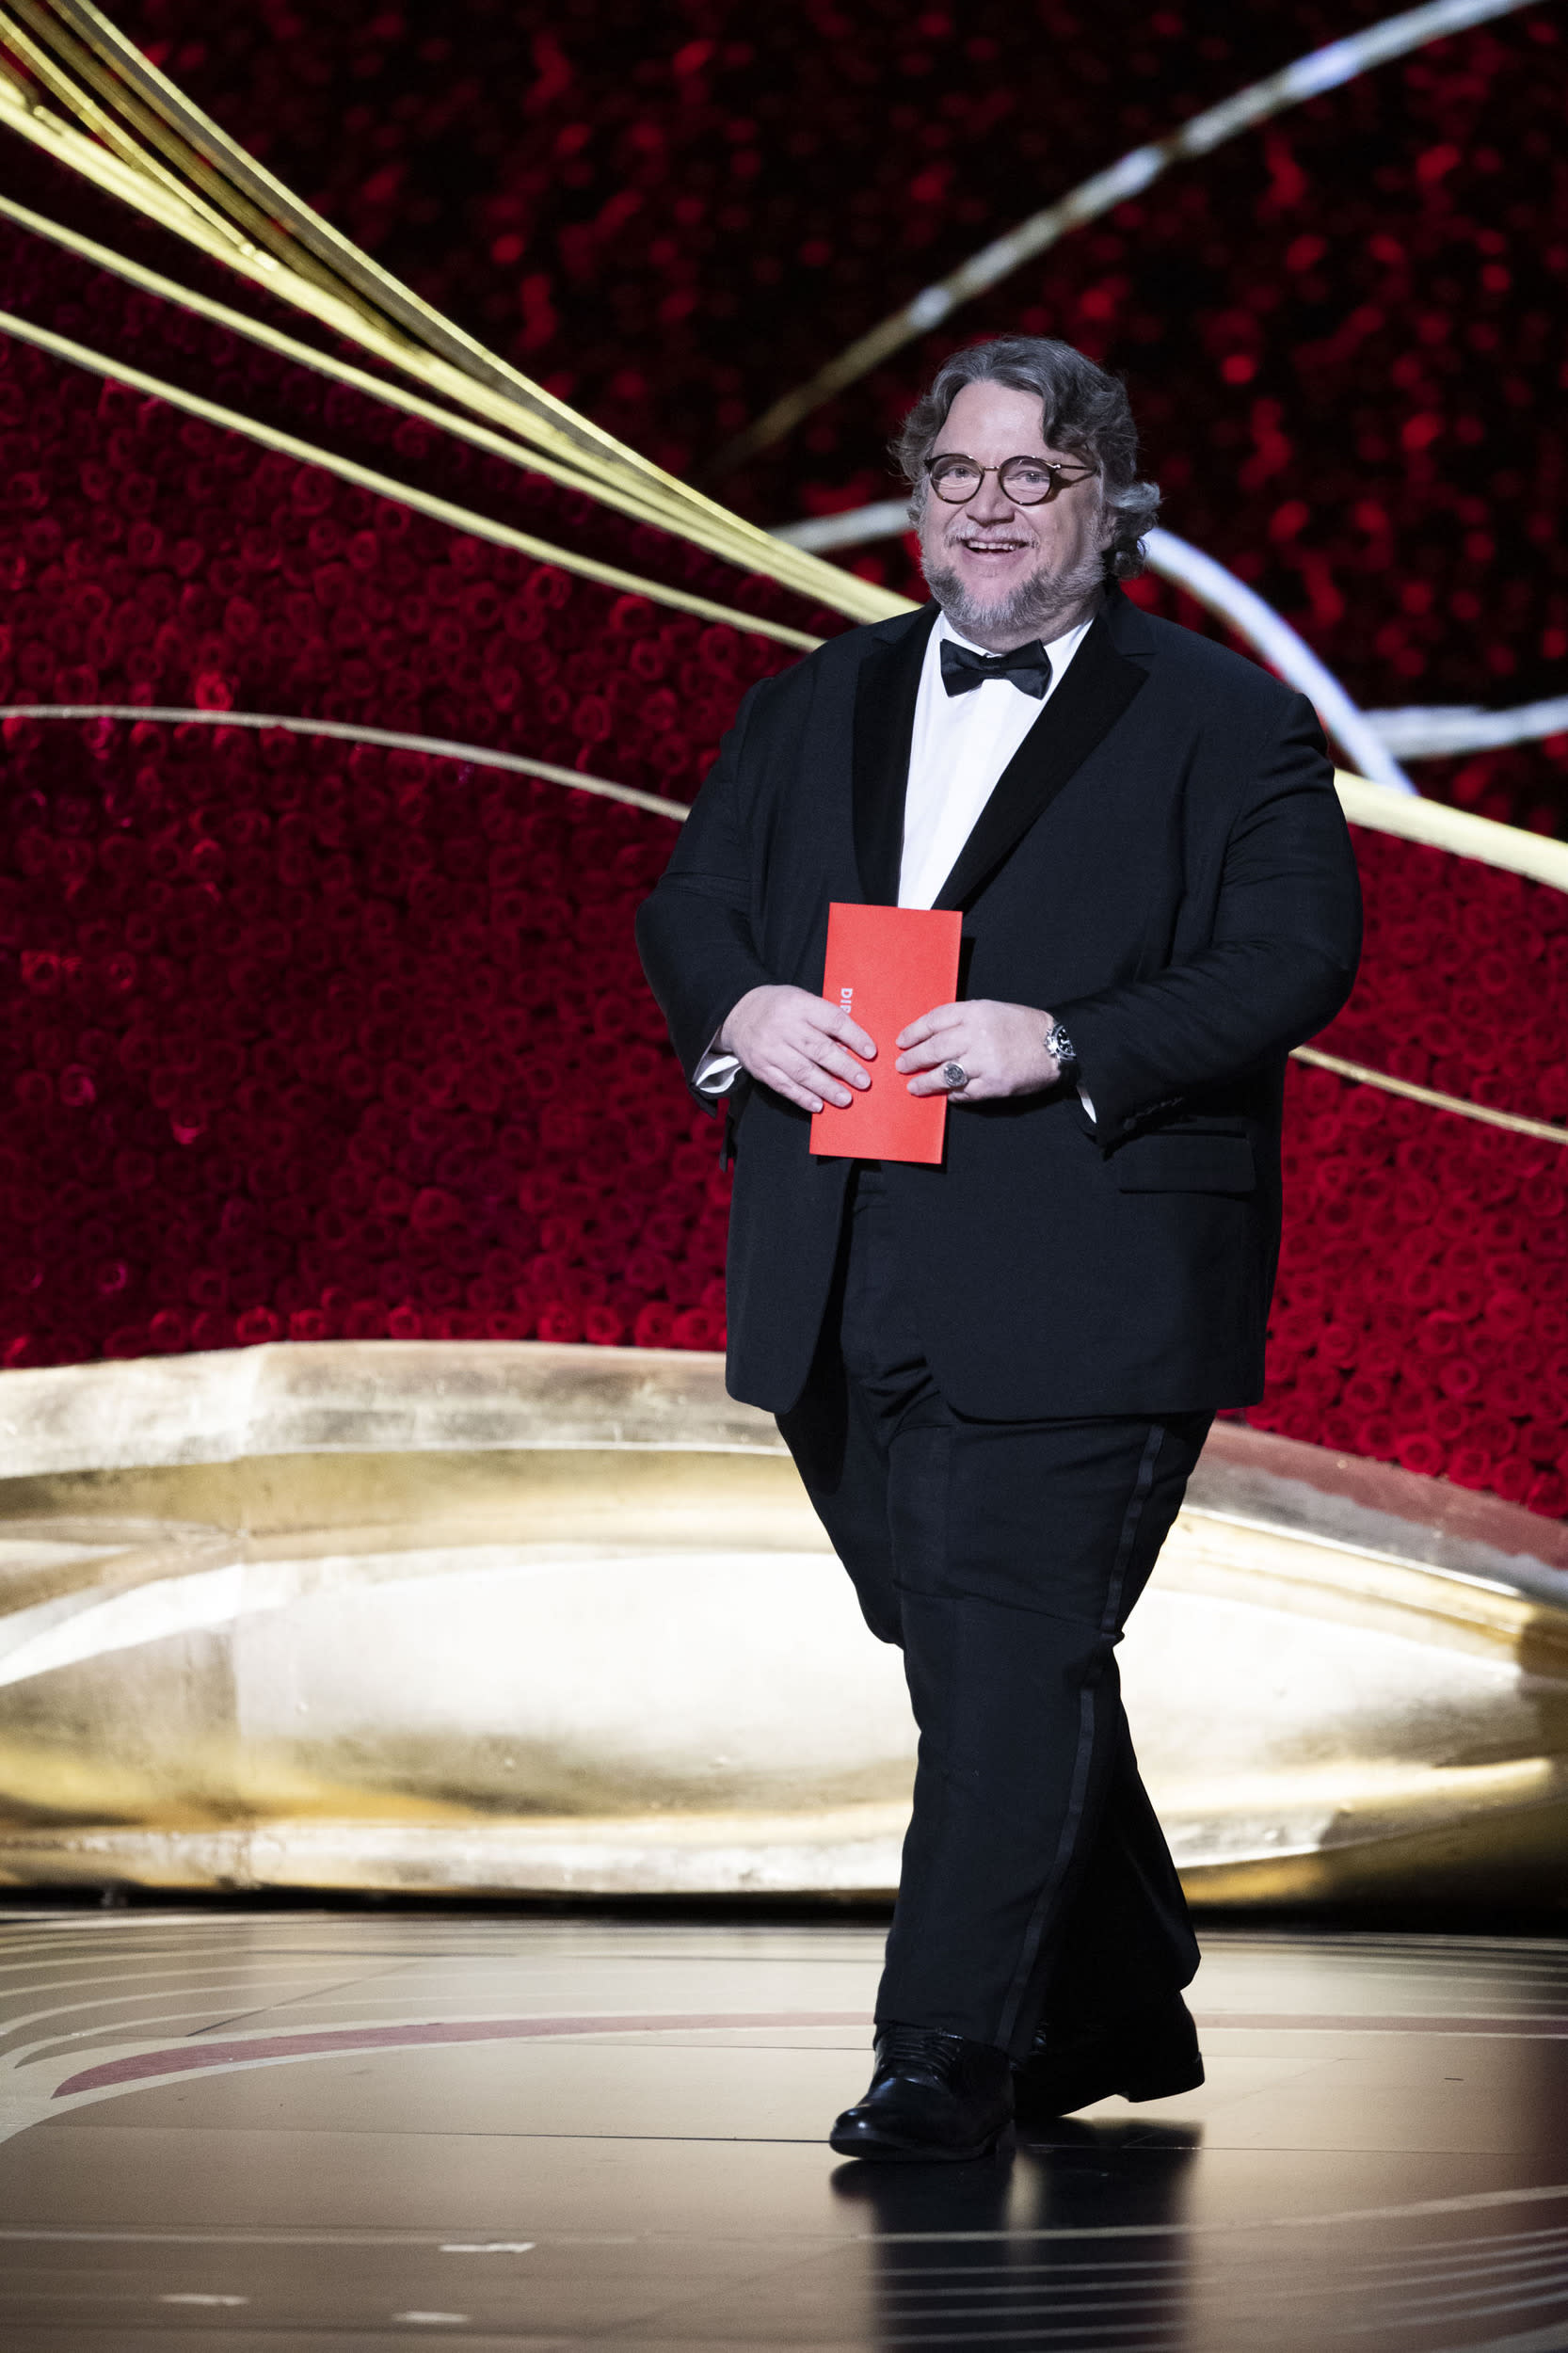 THE OSCARS® - The 91st Oscars® broadcasts live on Sunday, Feb. 24, 2019, at the Dolby Theatre® at Hollywood & Highland Center® in Hollywood and will be televised live on The ABC Television Network at 8:00 p.m. EST/5:00 p.m. PST.  (Craig Sjodin via Getty Images) GUILLERMO DEL TORO